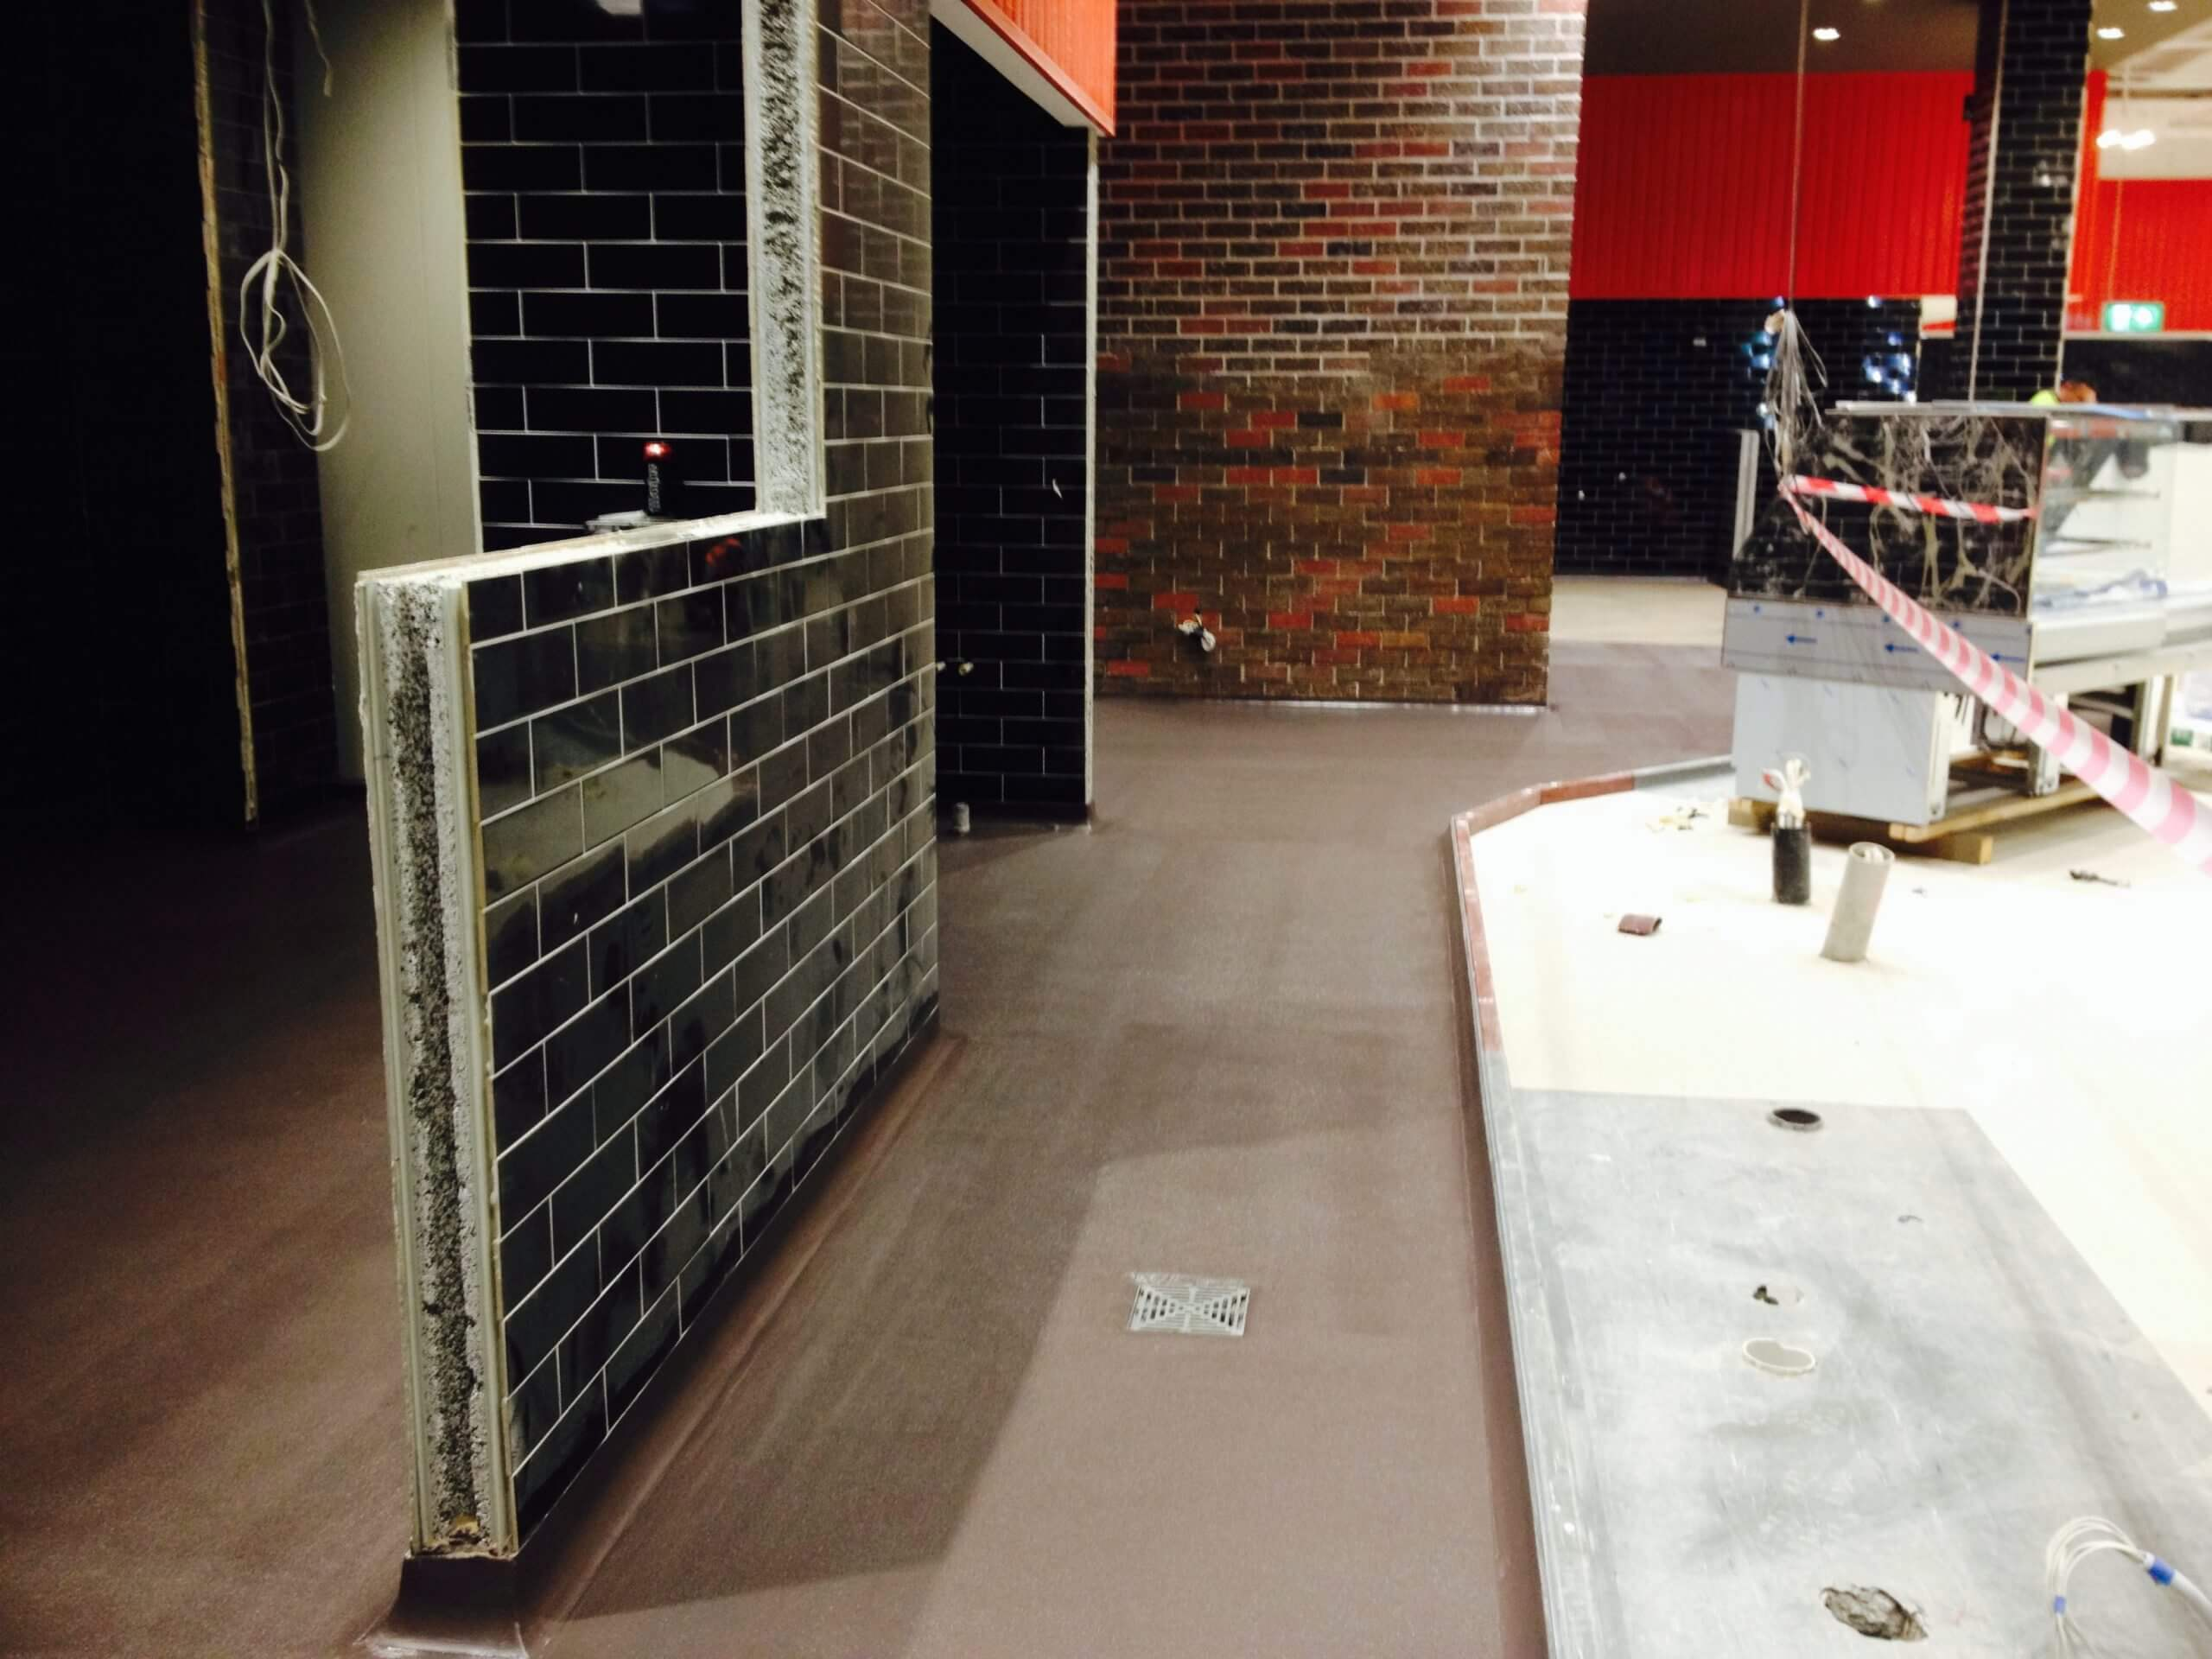 Flooring Solutions And Brick Wall - Flooring Options - Remedial Building Services